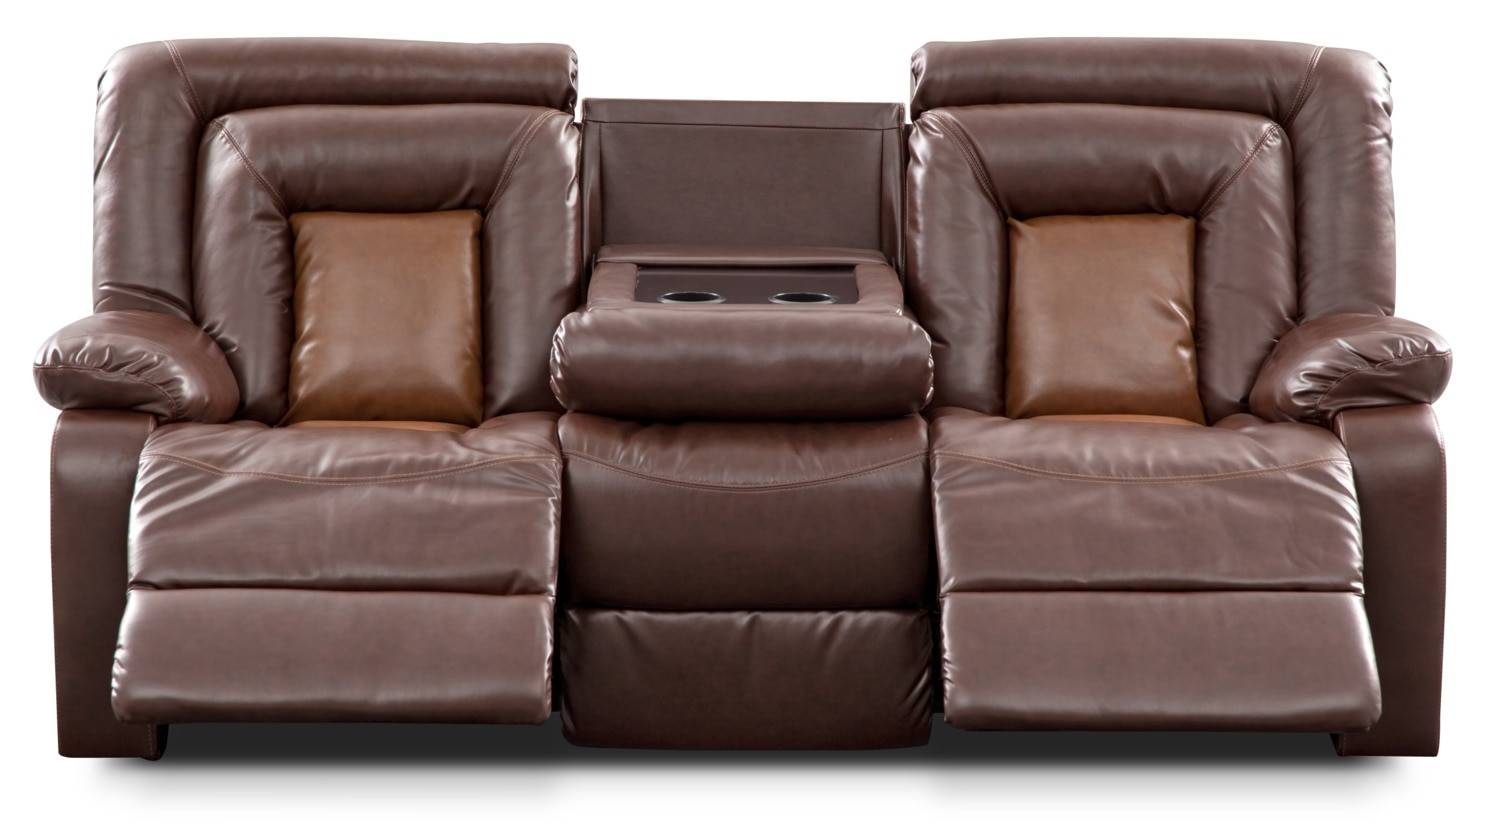 Sofas Center : Reclining Sofa With Console Tony Home Theatre intended for Sofas With Consoles (Image 23 of 30)